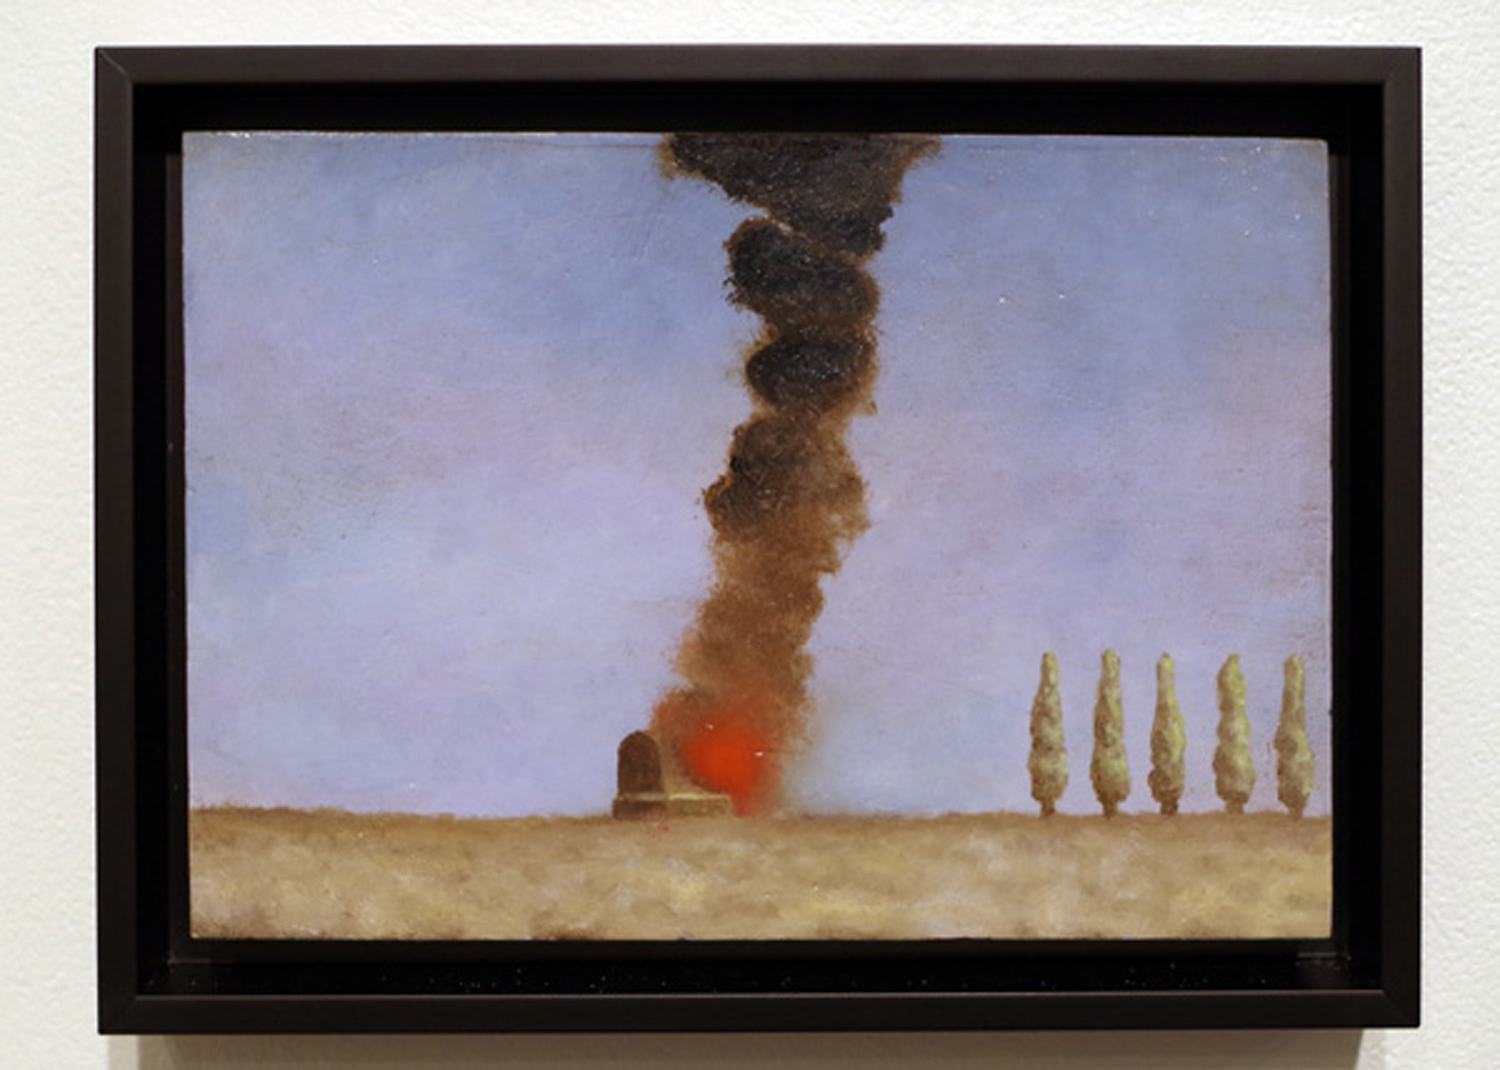 20. 'Field Test', Stuart Elliott, oil, varnish on recylced Masonite, $620